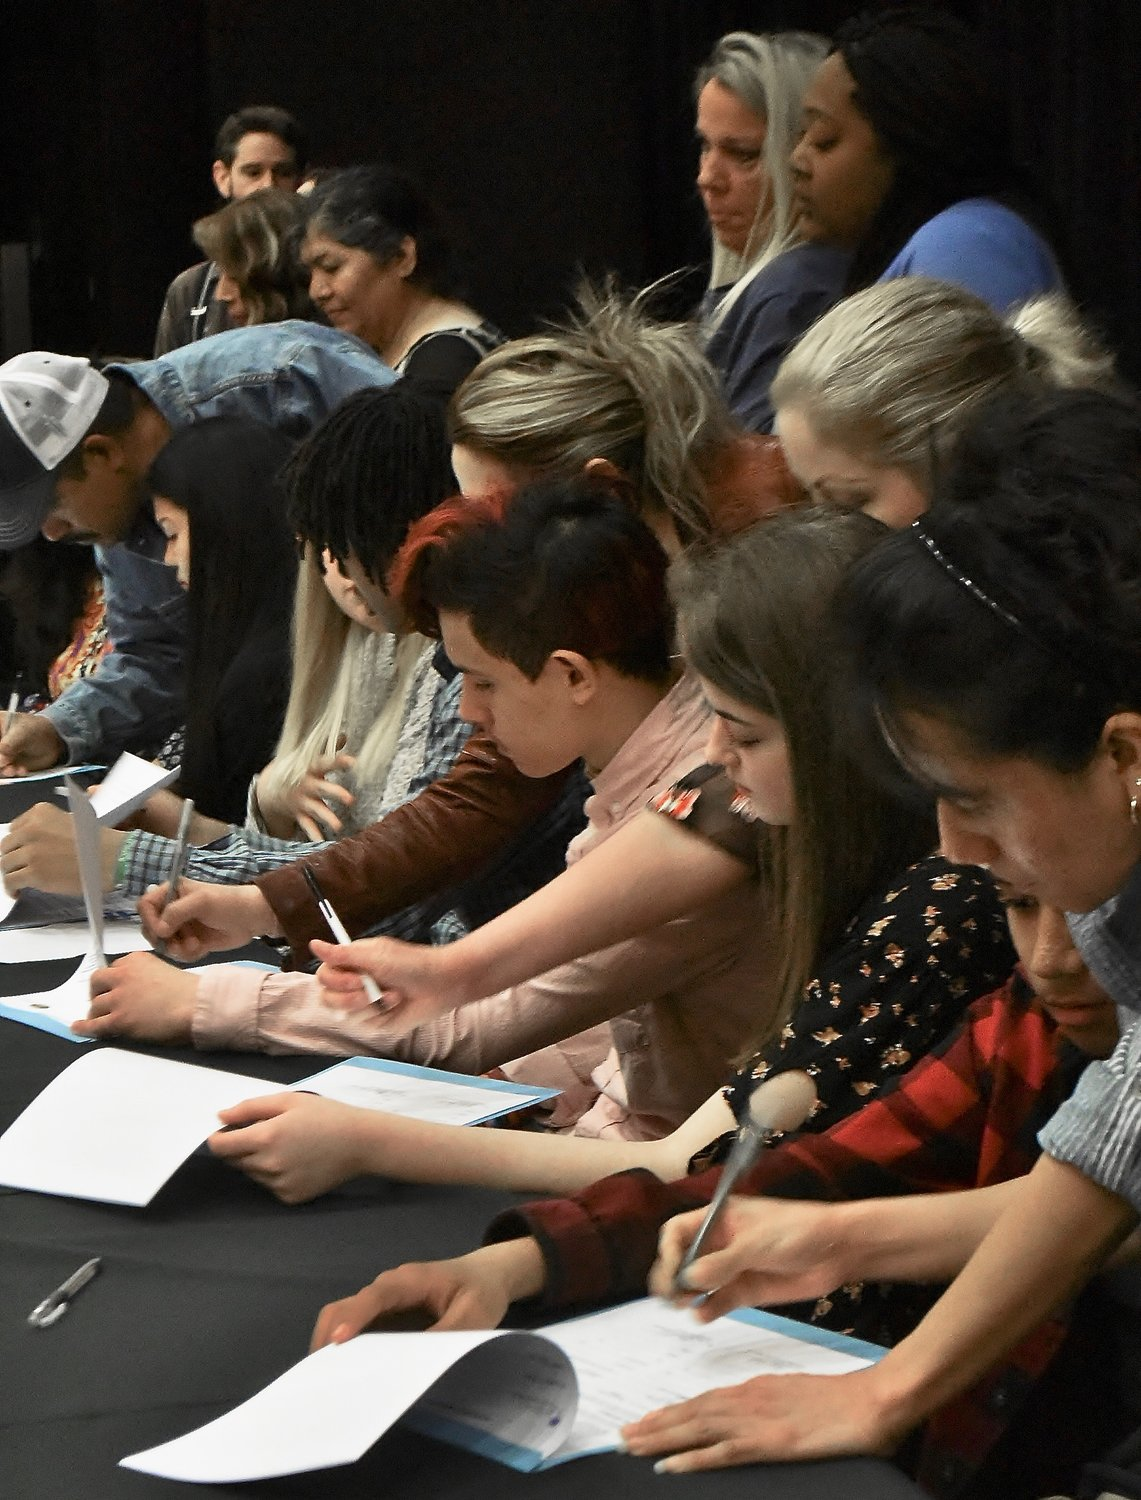 GateKey scholarship recipients and their parents sign their contracts at Friday morning's signing ceremony in the auditorium at Cartersville High School.